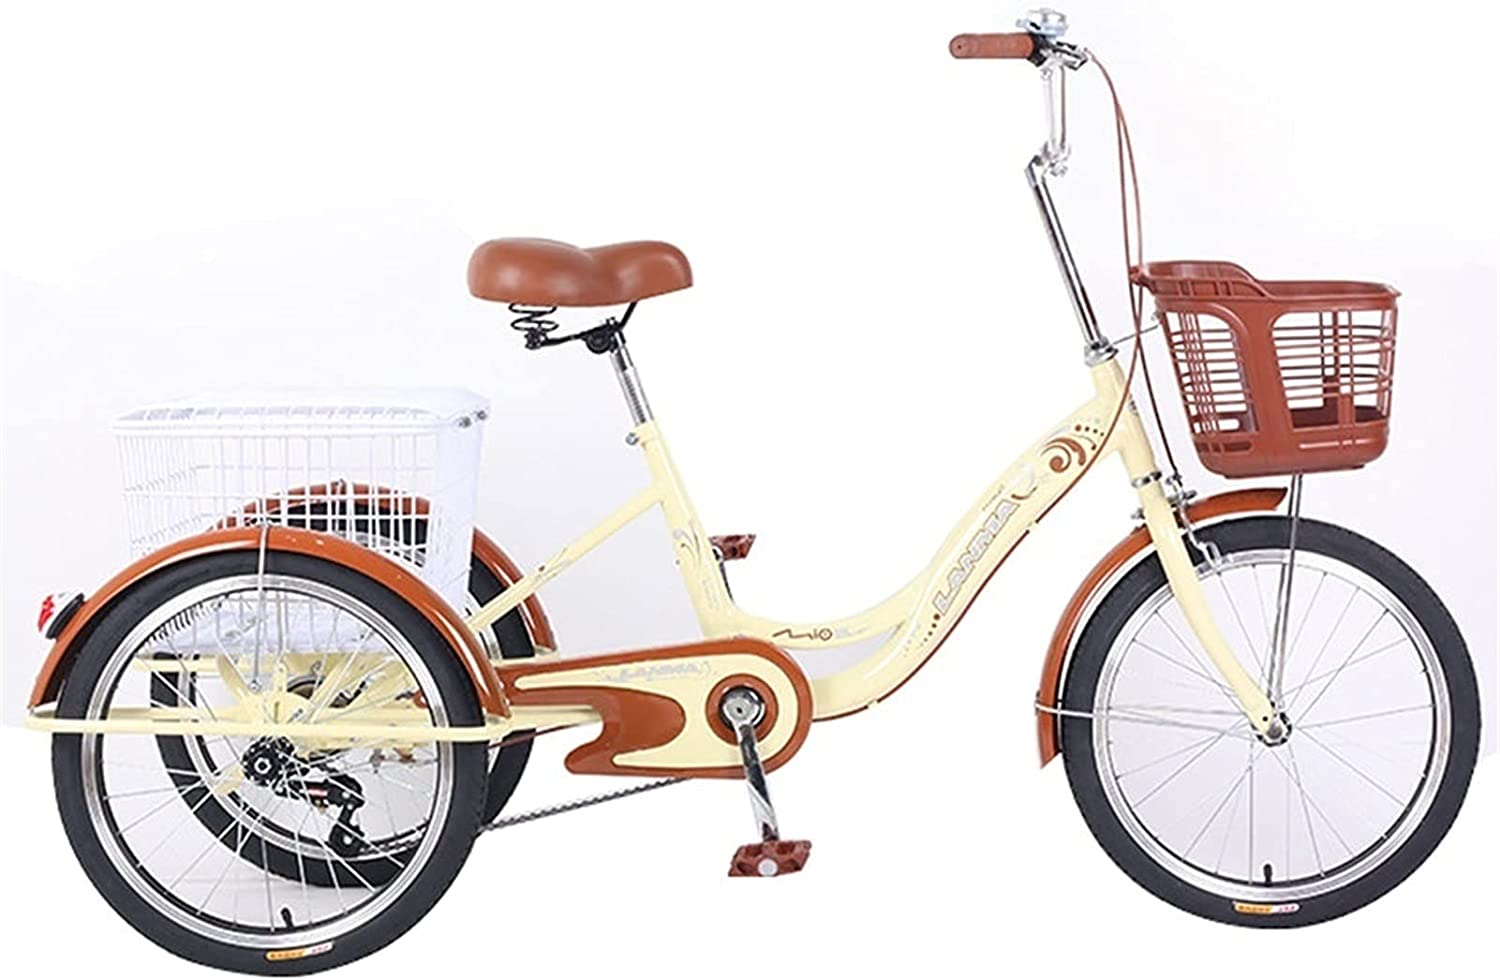 YXYH Adult Tricycles Human 3 Wheel 20 Max 89% OFF Inc 1 Bicycle San Jose Mall Speed Trikes